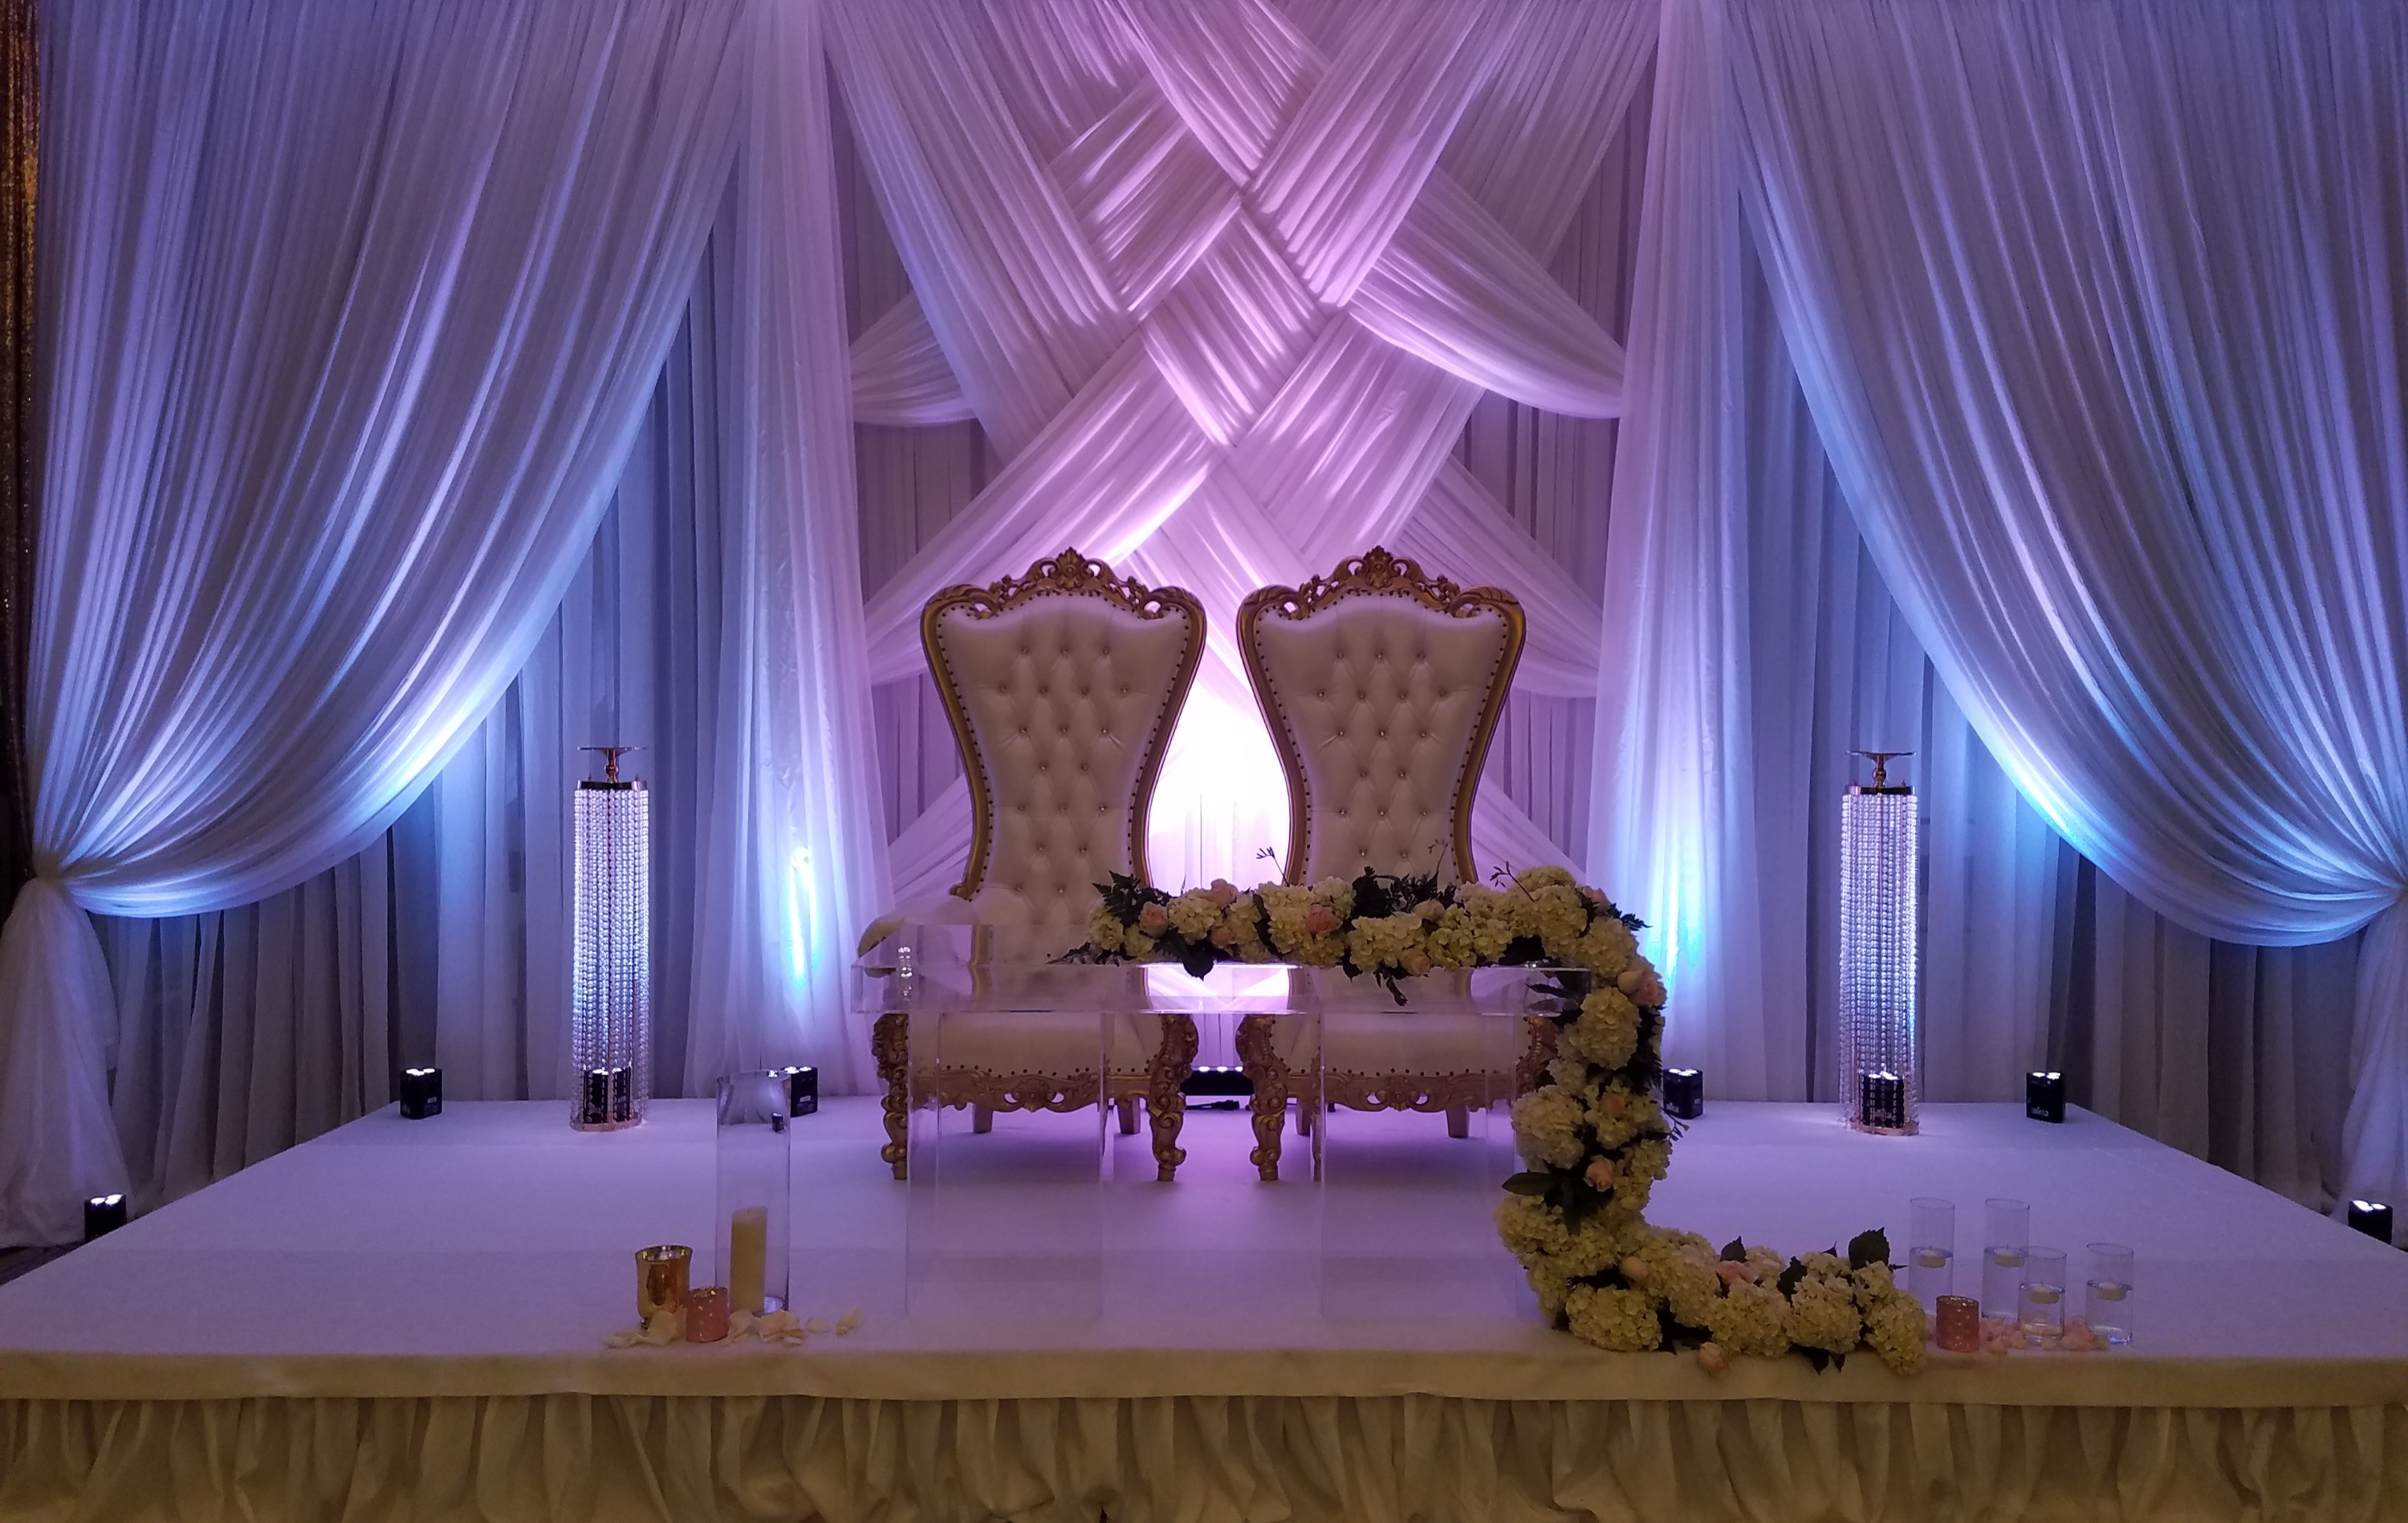 Sofia - White on Gold Throne Chairs